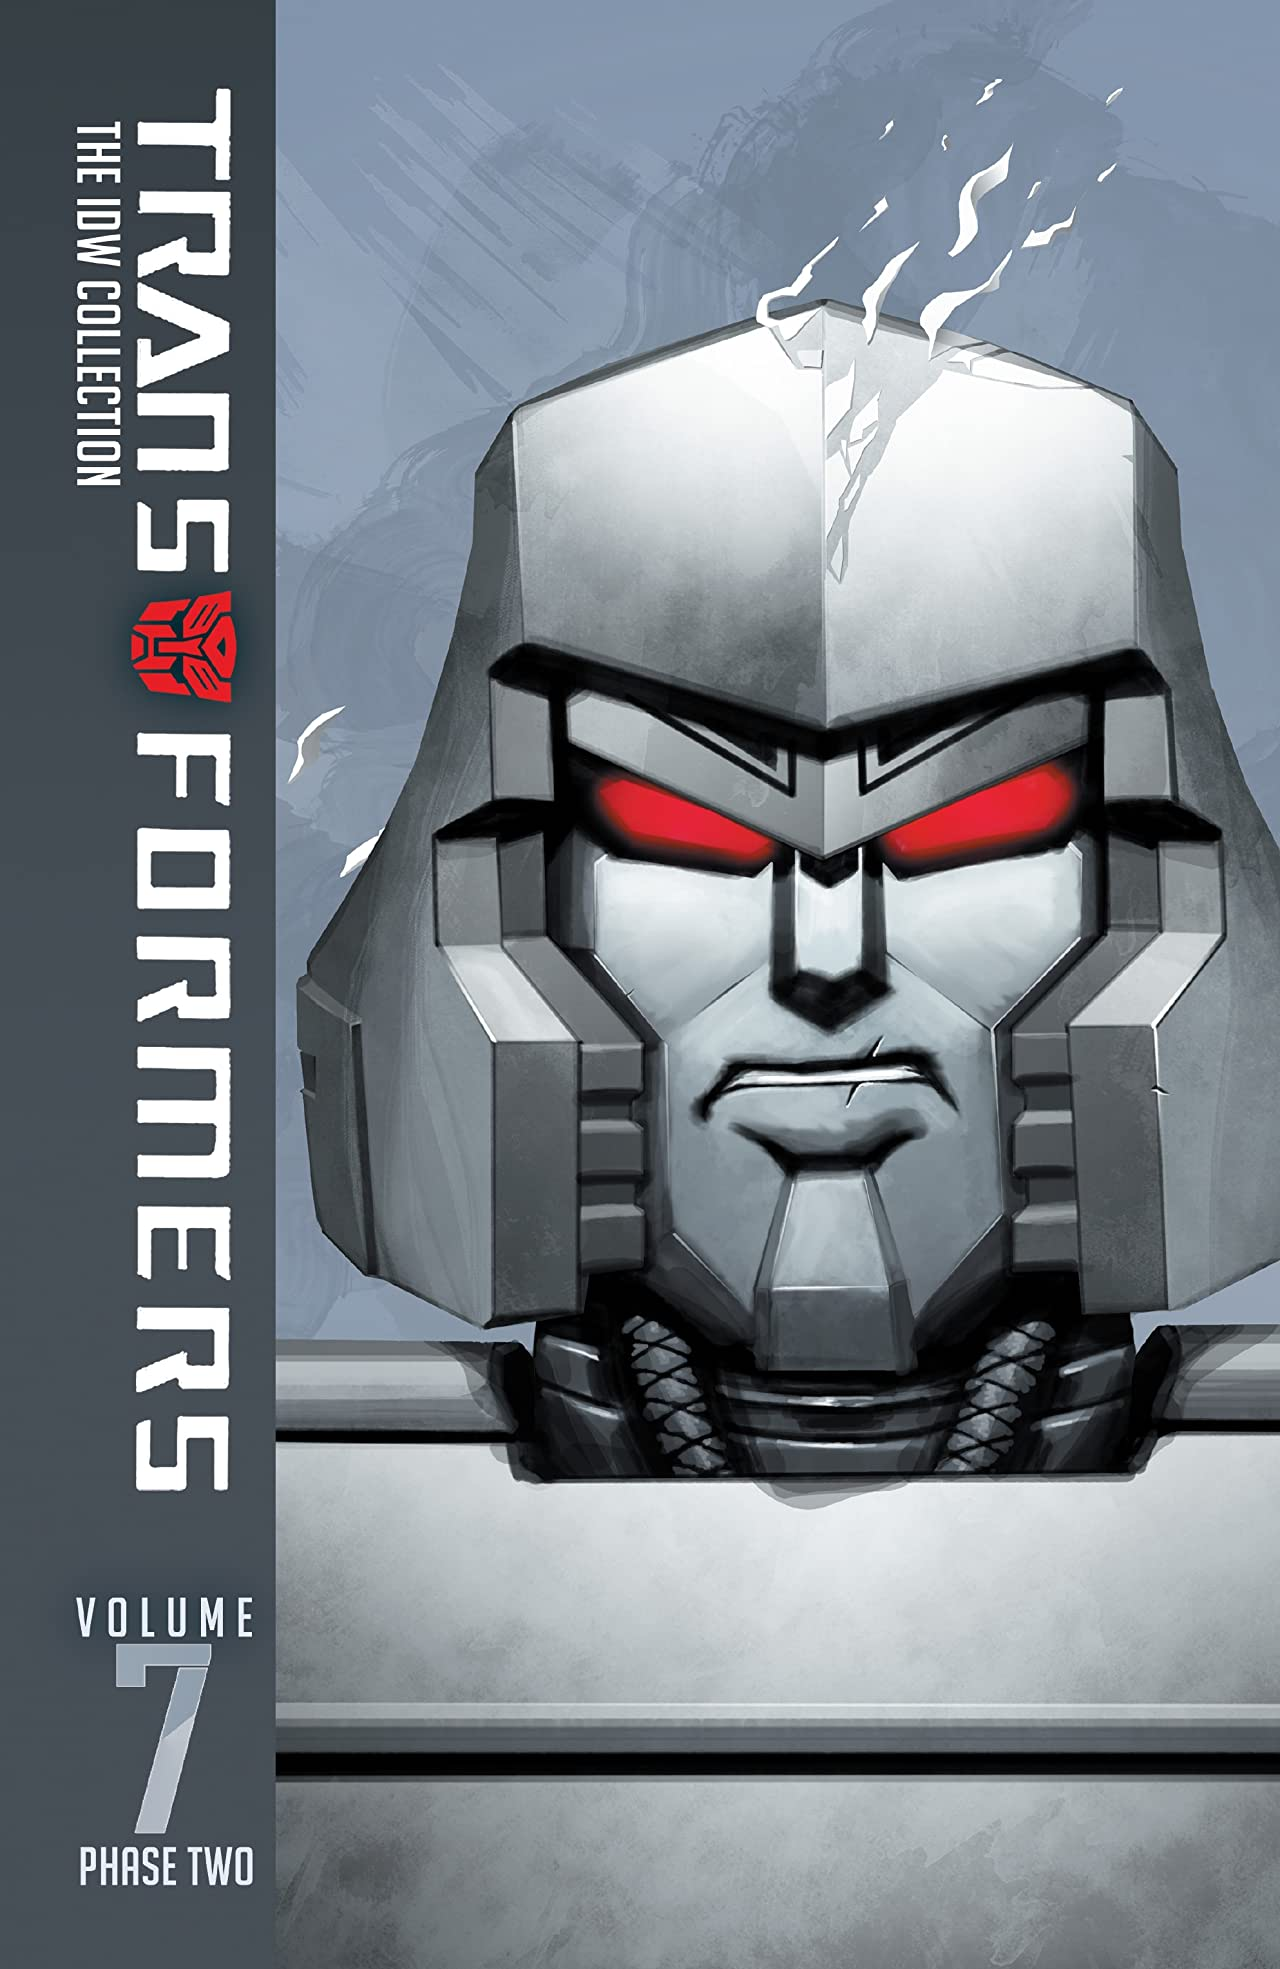 Transformers: IDW Collection - Phase Two Vol. 7